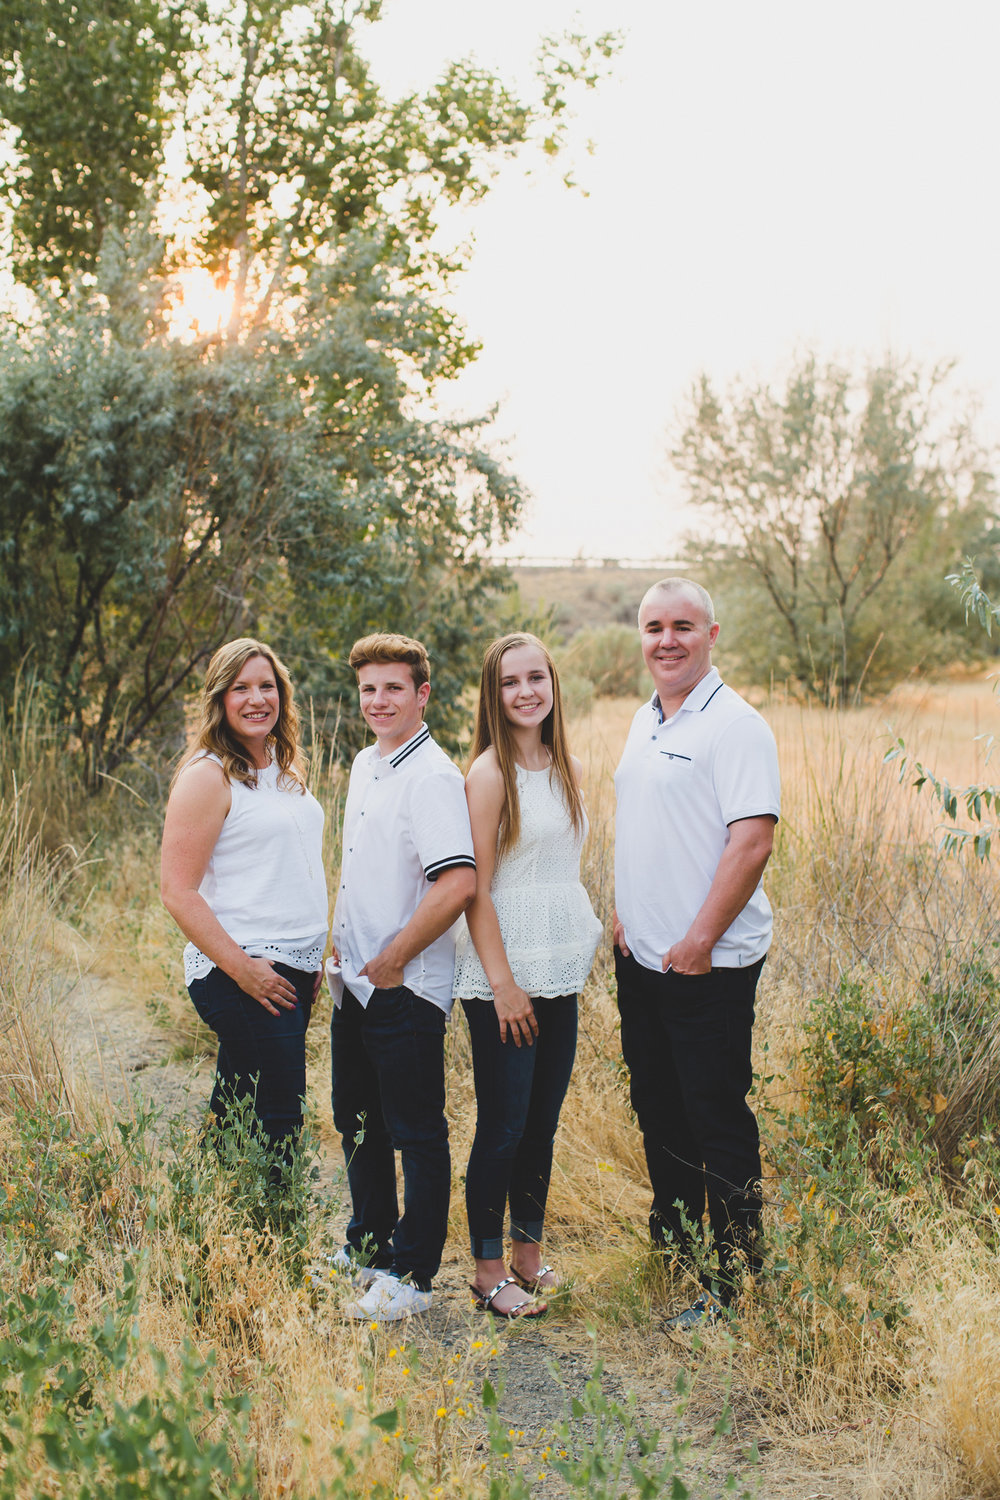 Jordan Edens Photography_tri cities family photographer_lance kenmore_Kenmore family_family photographer_tri cities family photographer_kennewick family photographer_richland family photographer_family moments_23